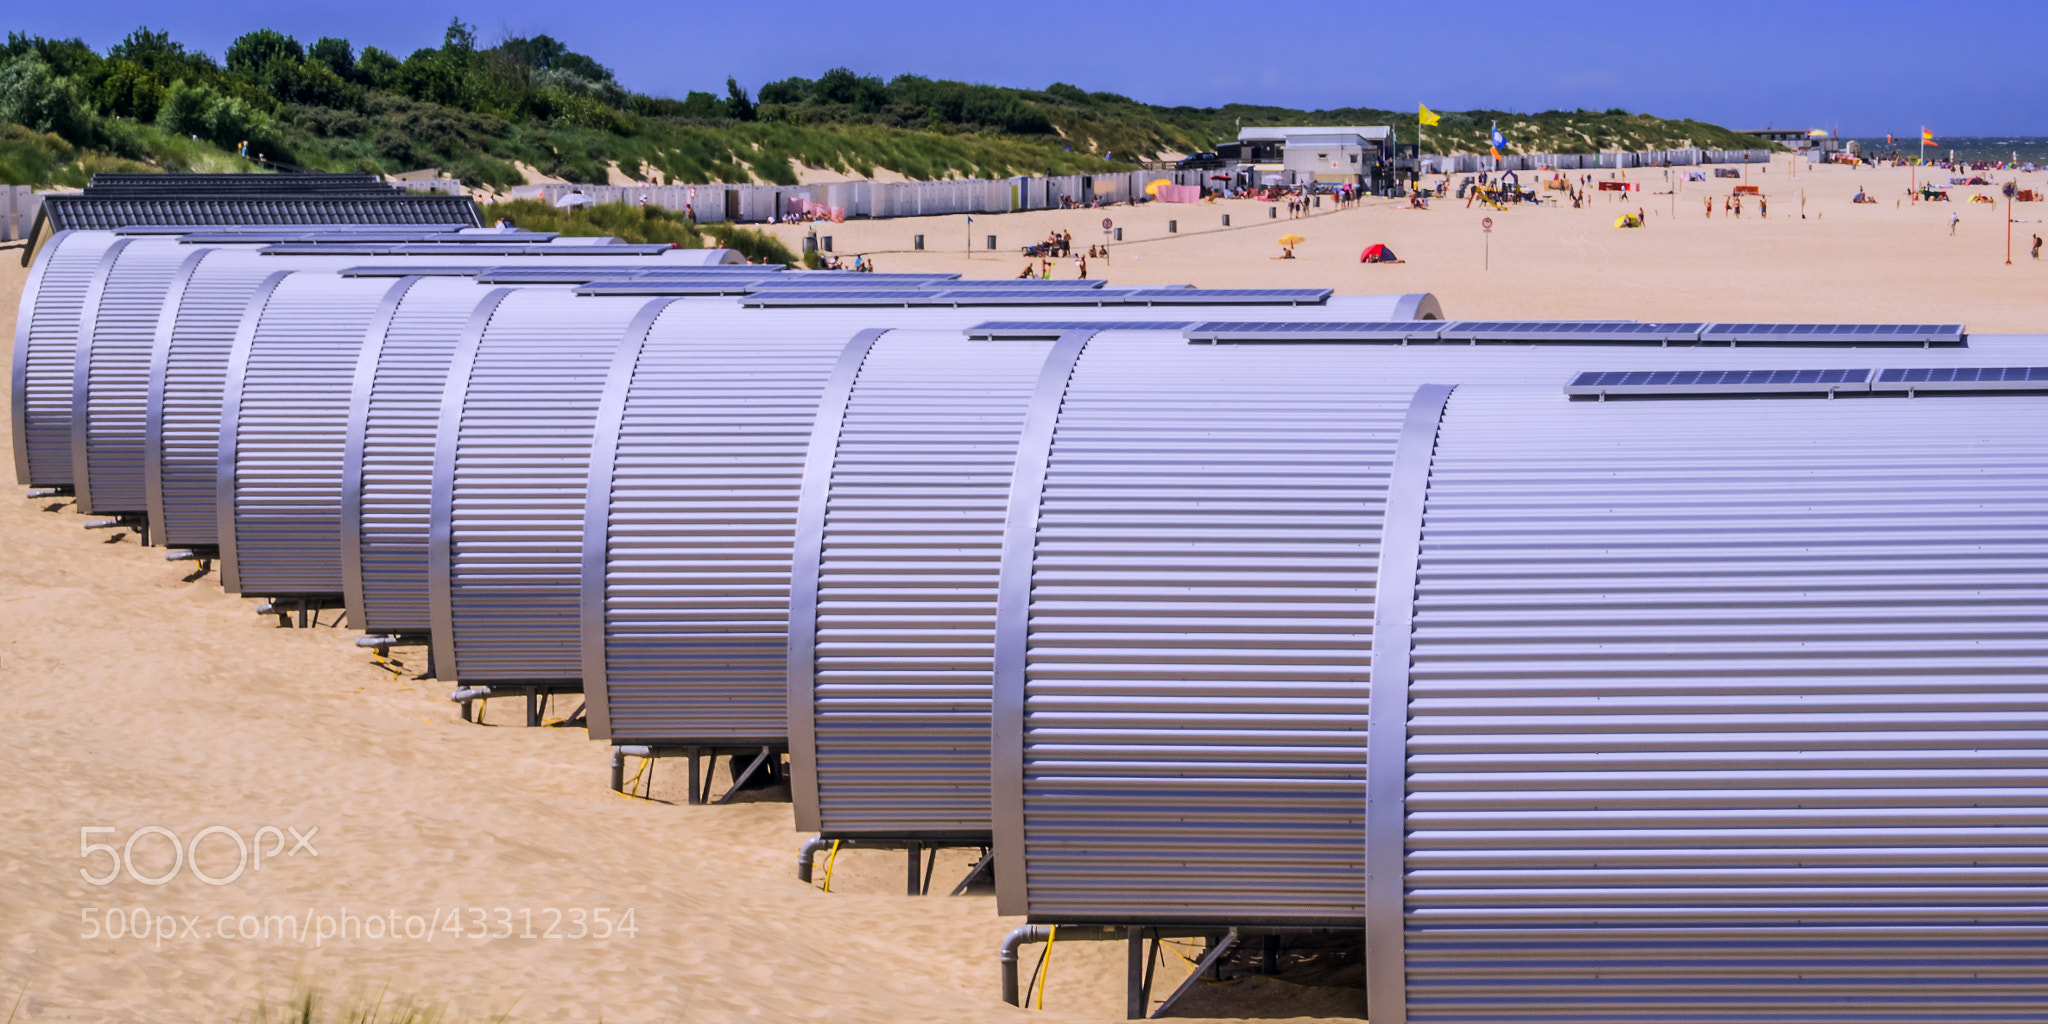 Photograph Modern Beach-Housing by Andi Gast on 500px